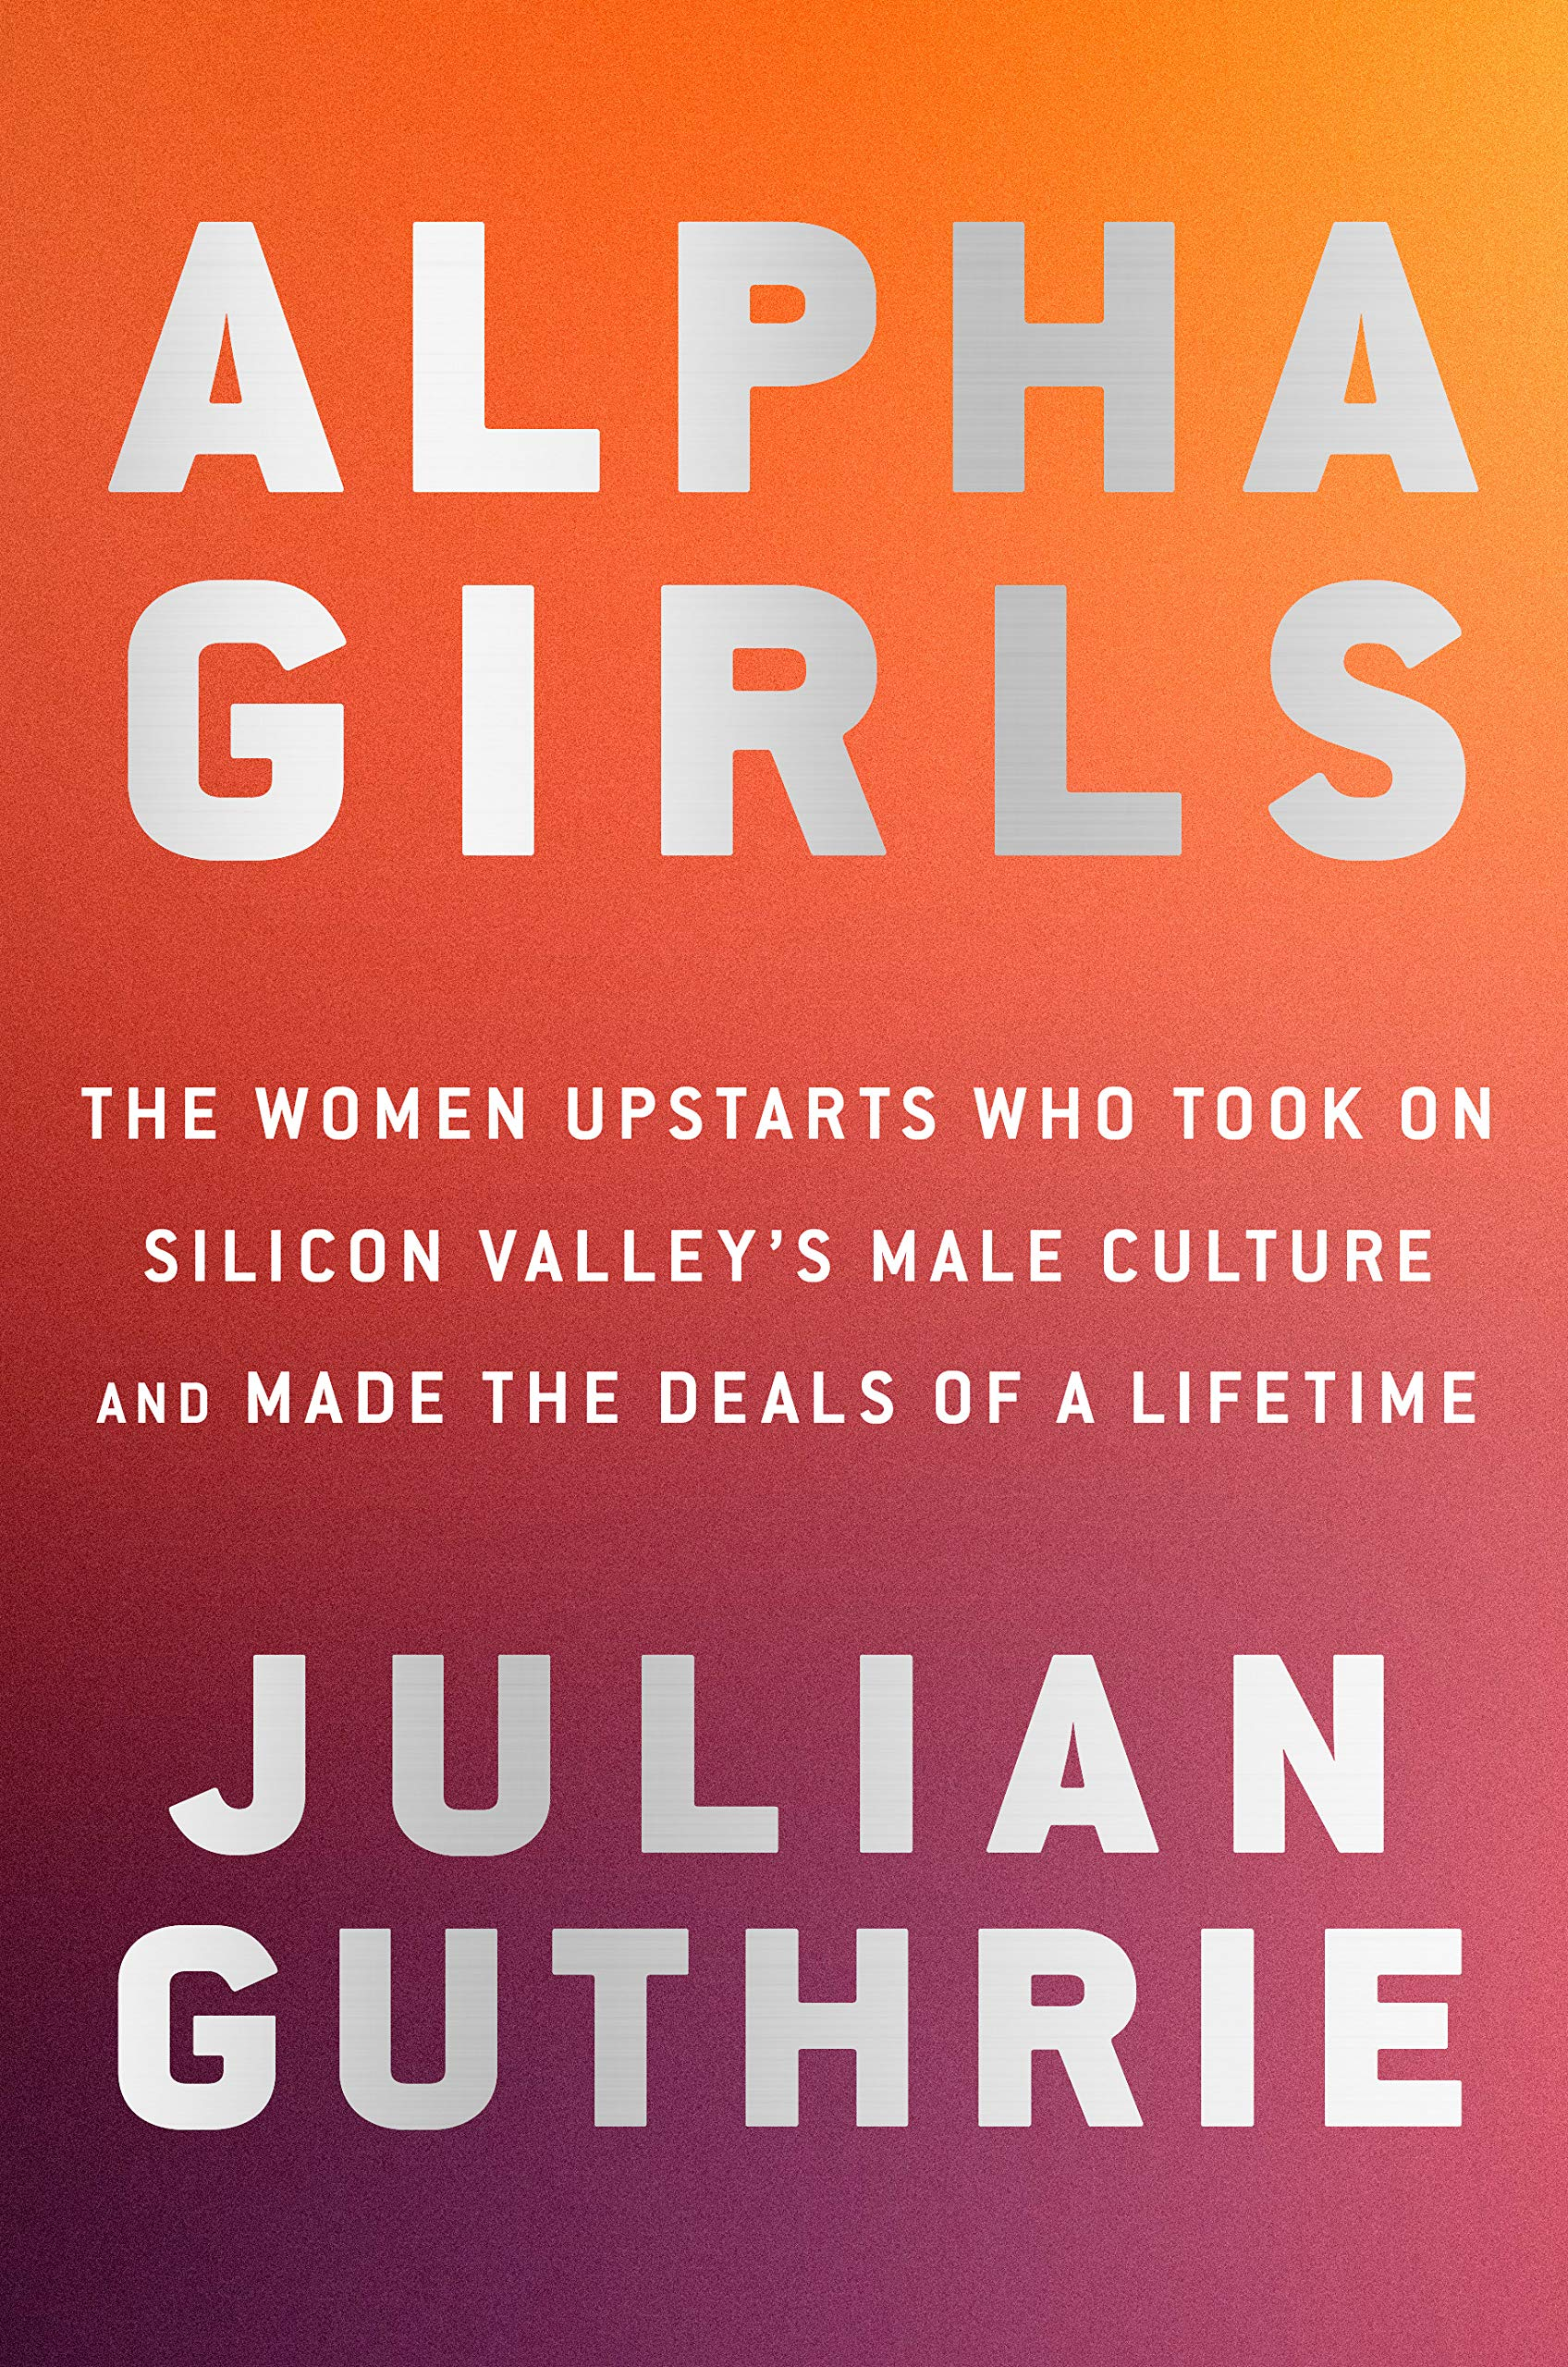 Alpha Girls The Women Upstarts Who Took On Silicon Valley S Male Culture And Made The Deals Of A Lifetime Guthrie Julian 9780525573920 Amazon Com Books